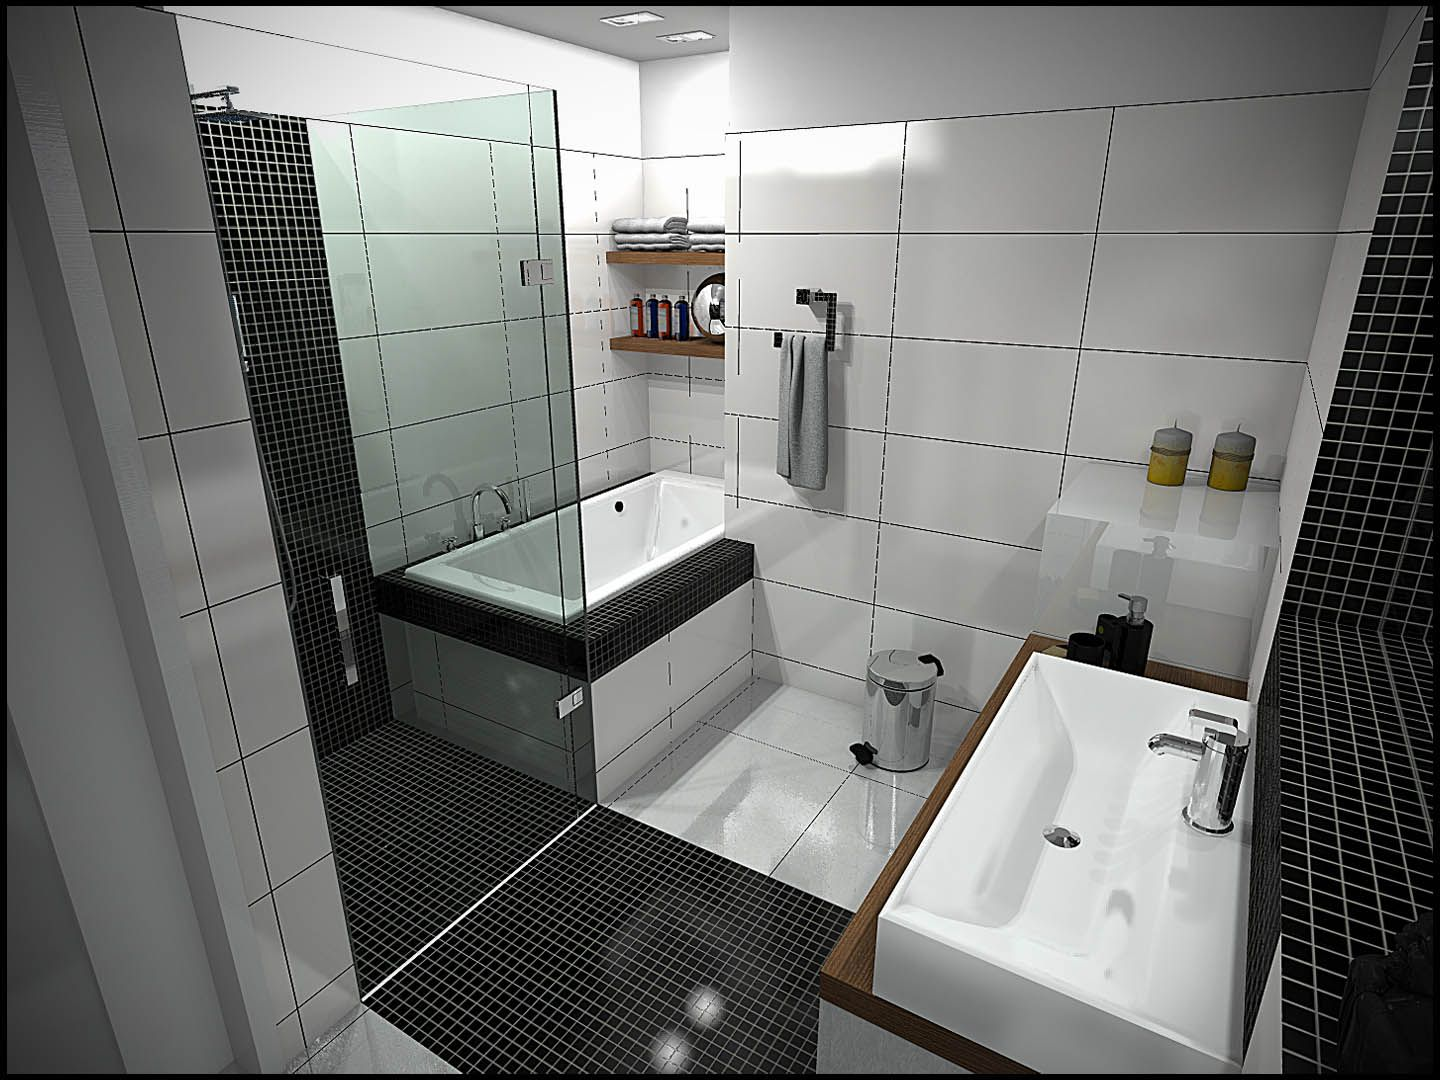 Marvelous Bathroom, Enthralling Small Bathroom Design Ideas With Gorgeous Corner  Black White Ceramic Tile Freestanding Bathtub And Modern Shower Enclosures  Also ... Part 32